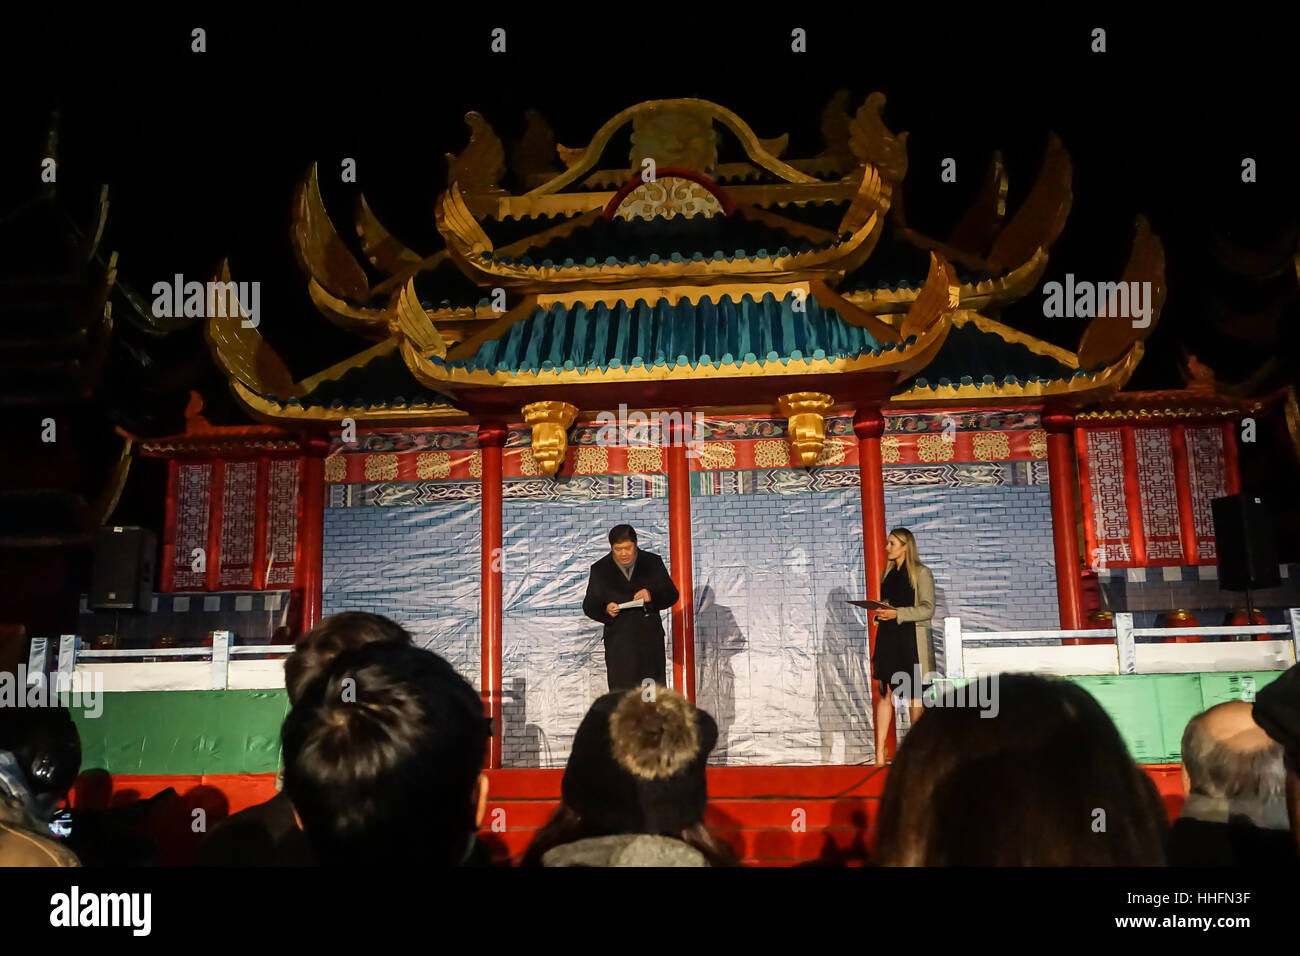 London, UK. 18th January, 2017. 'Magical Lantern Festival' VIP Night with an all-new show transforming historic Stock Photo